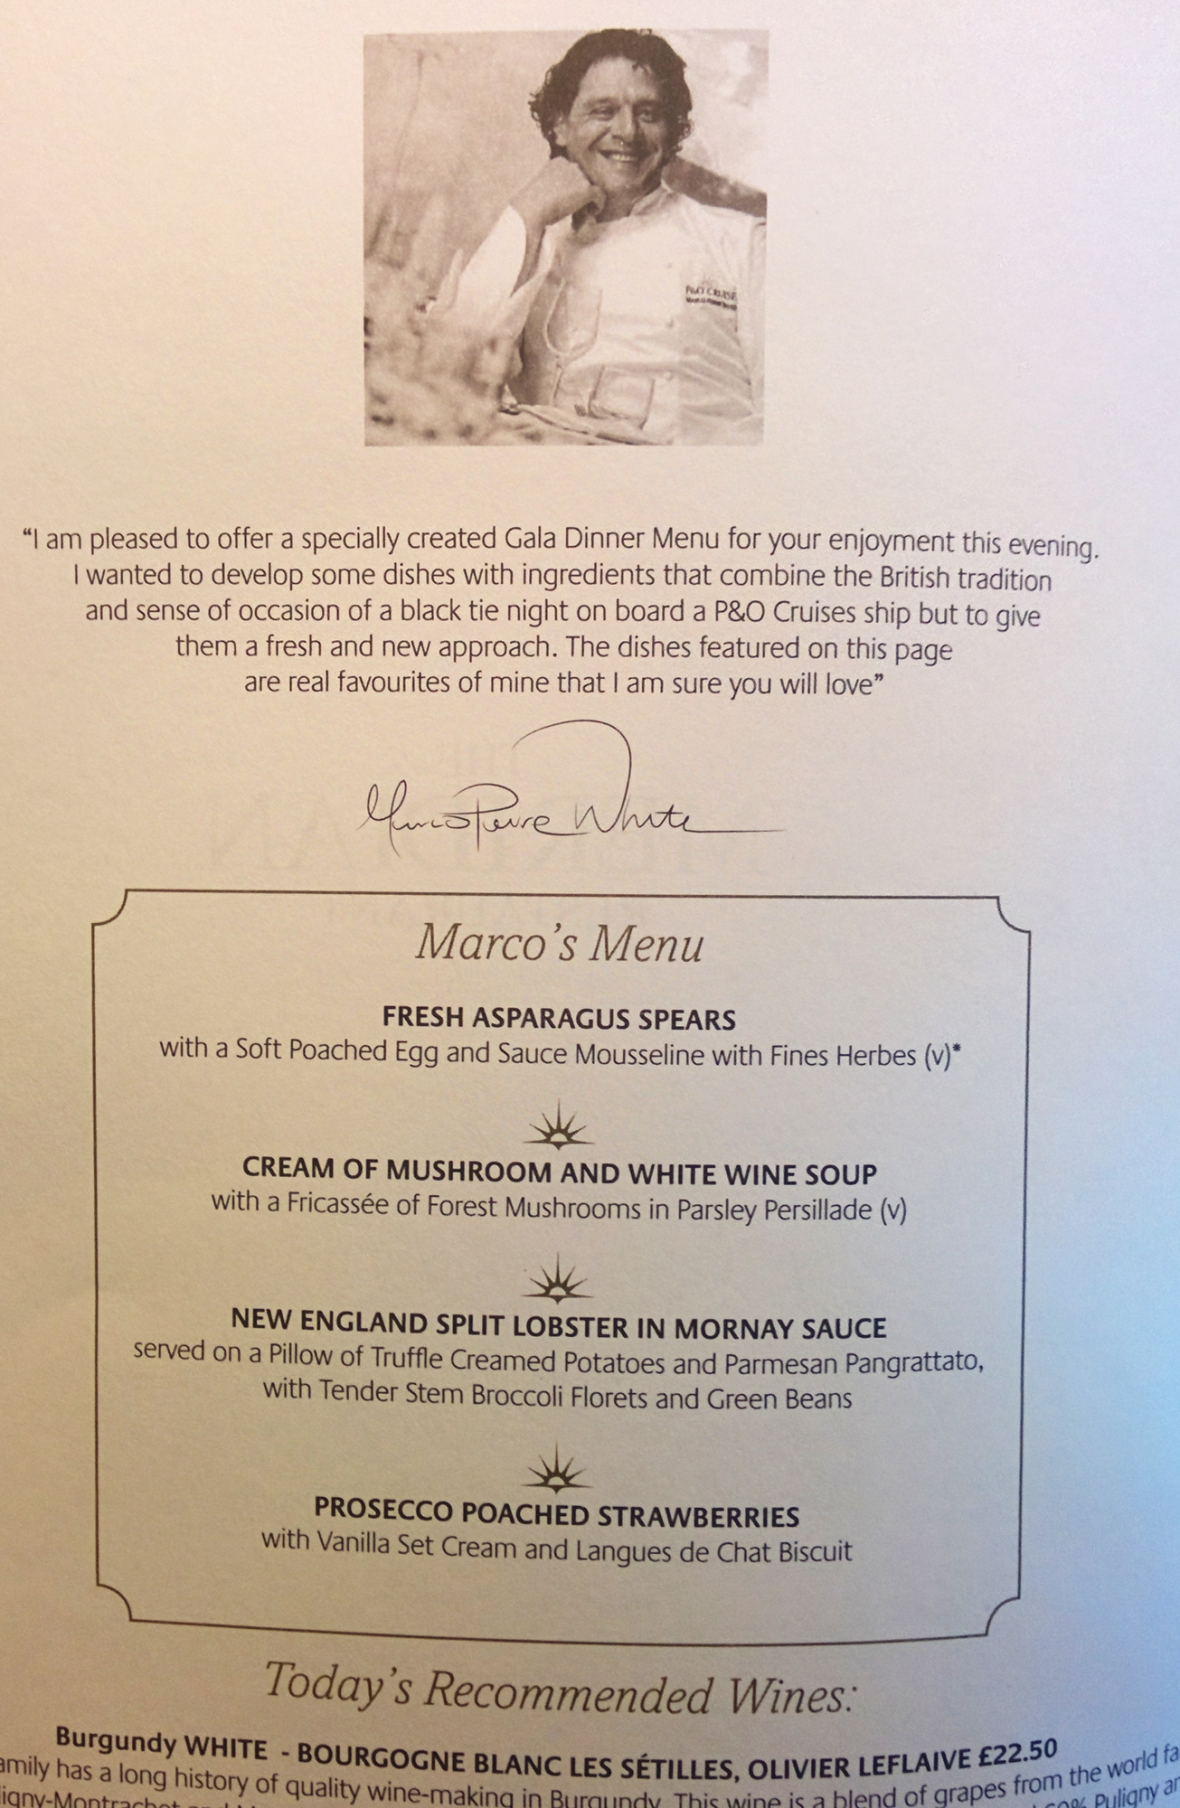 Glad Dinner by Marco Pierre White